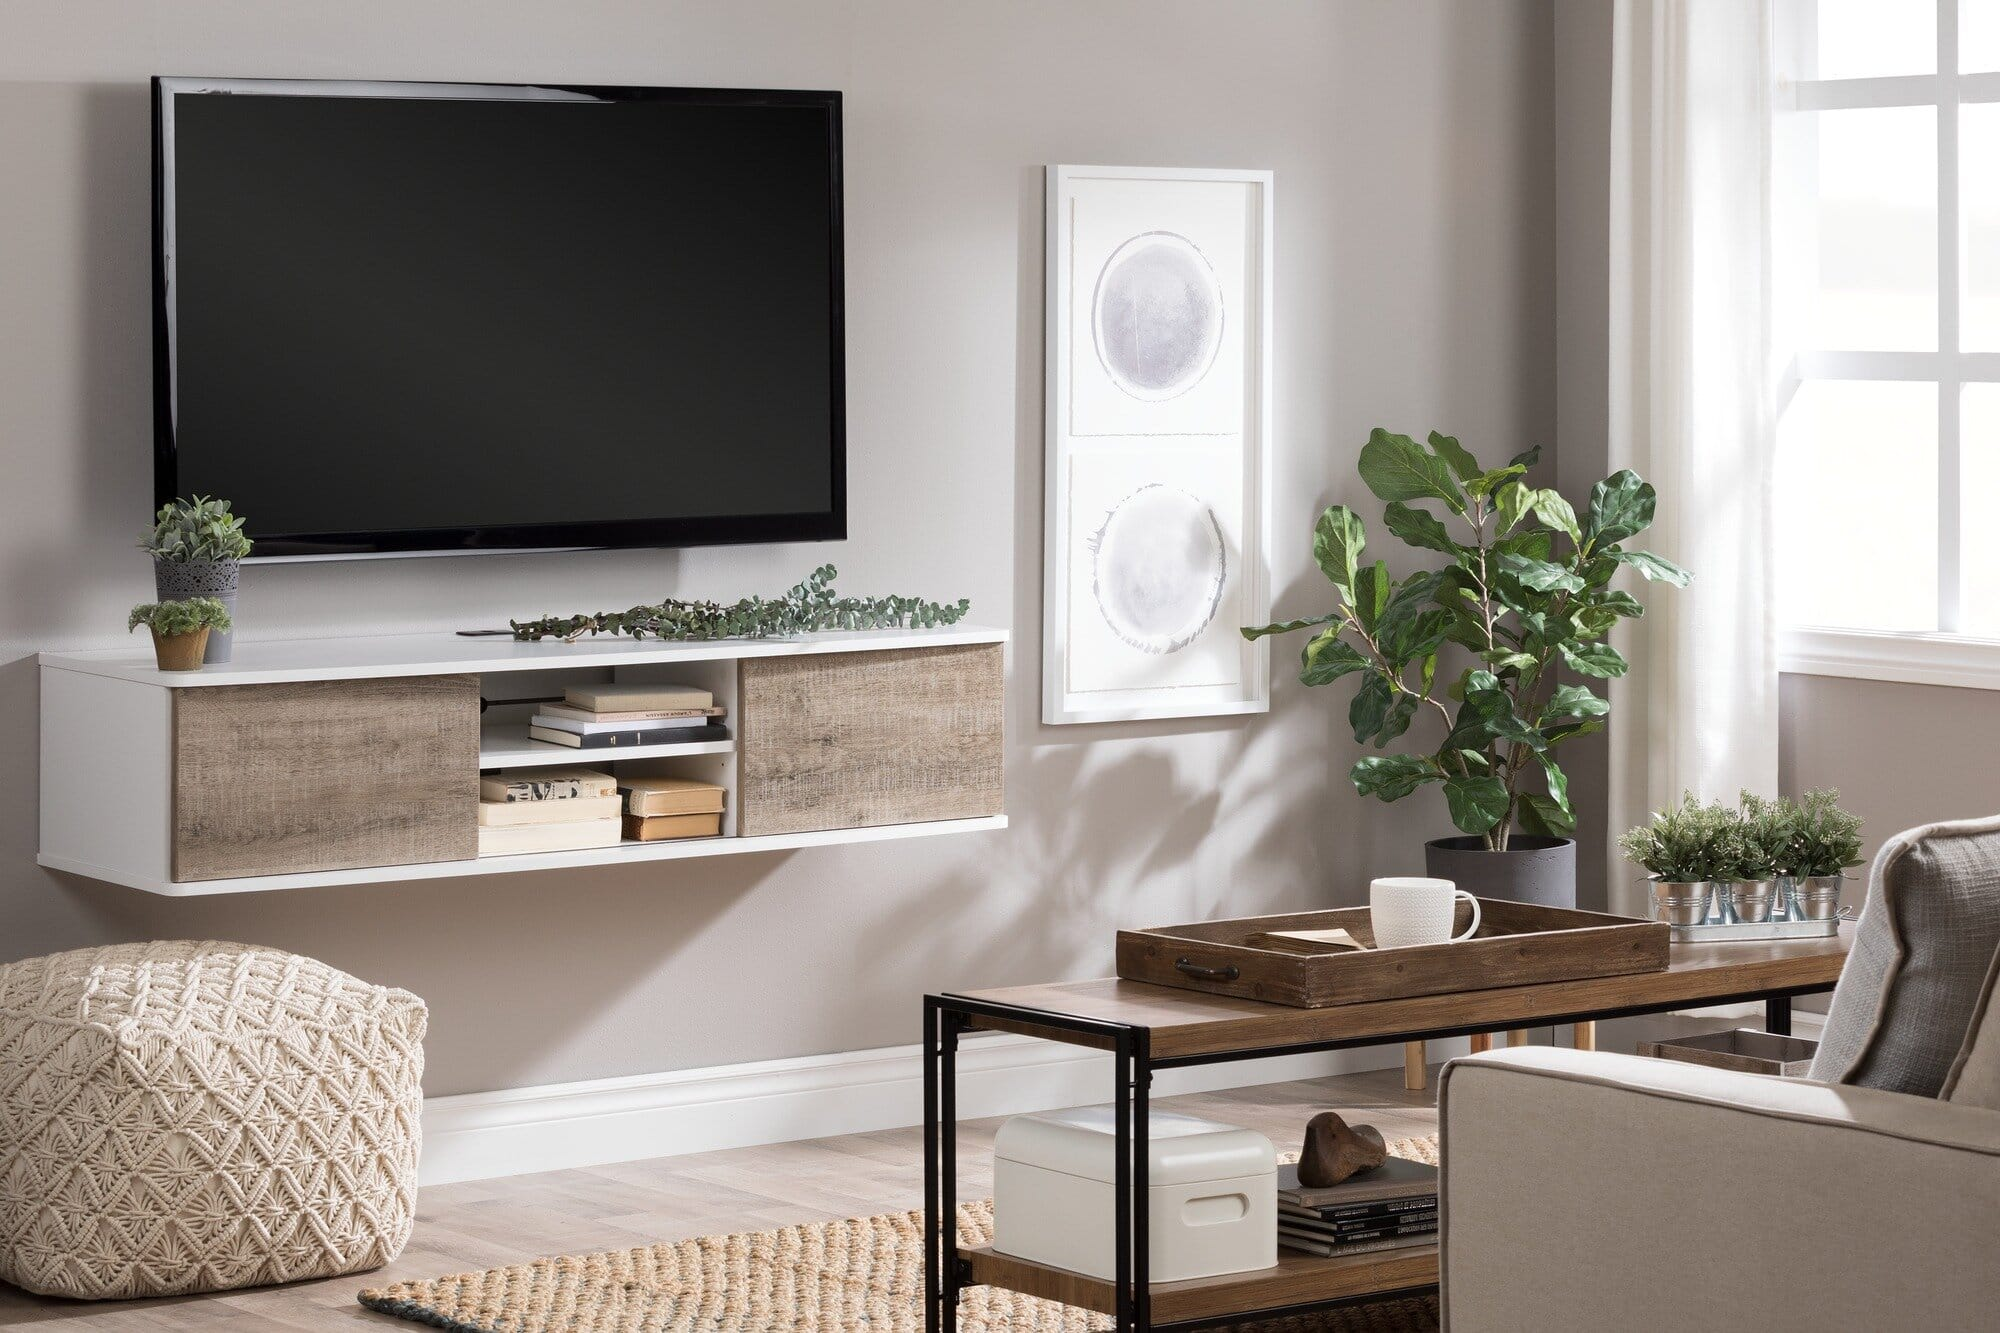 wall mounted tv above white and timber rustic entertainment unit